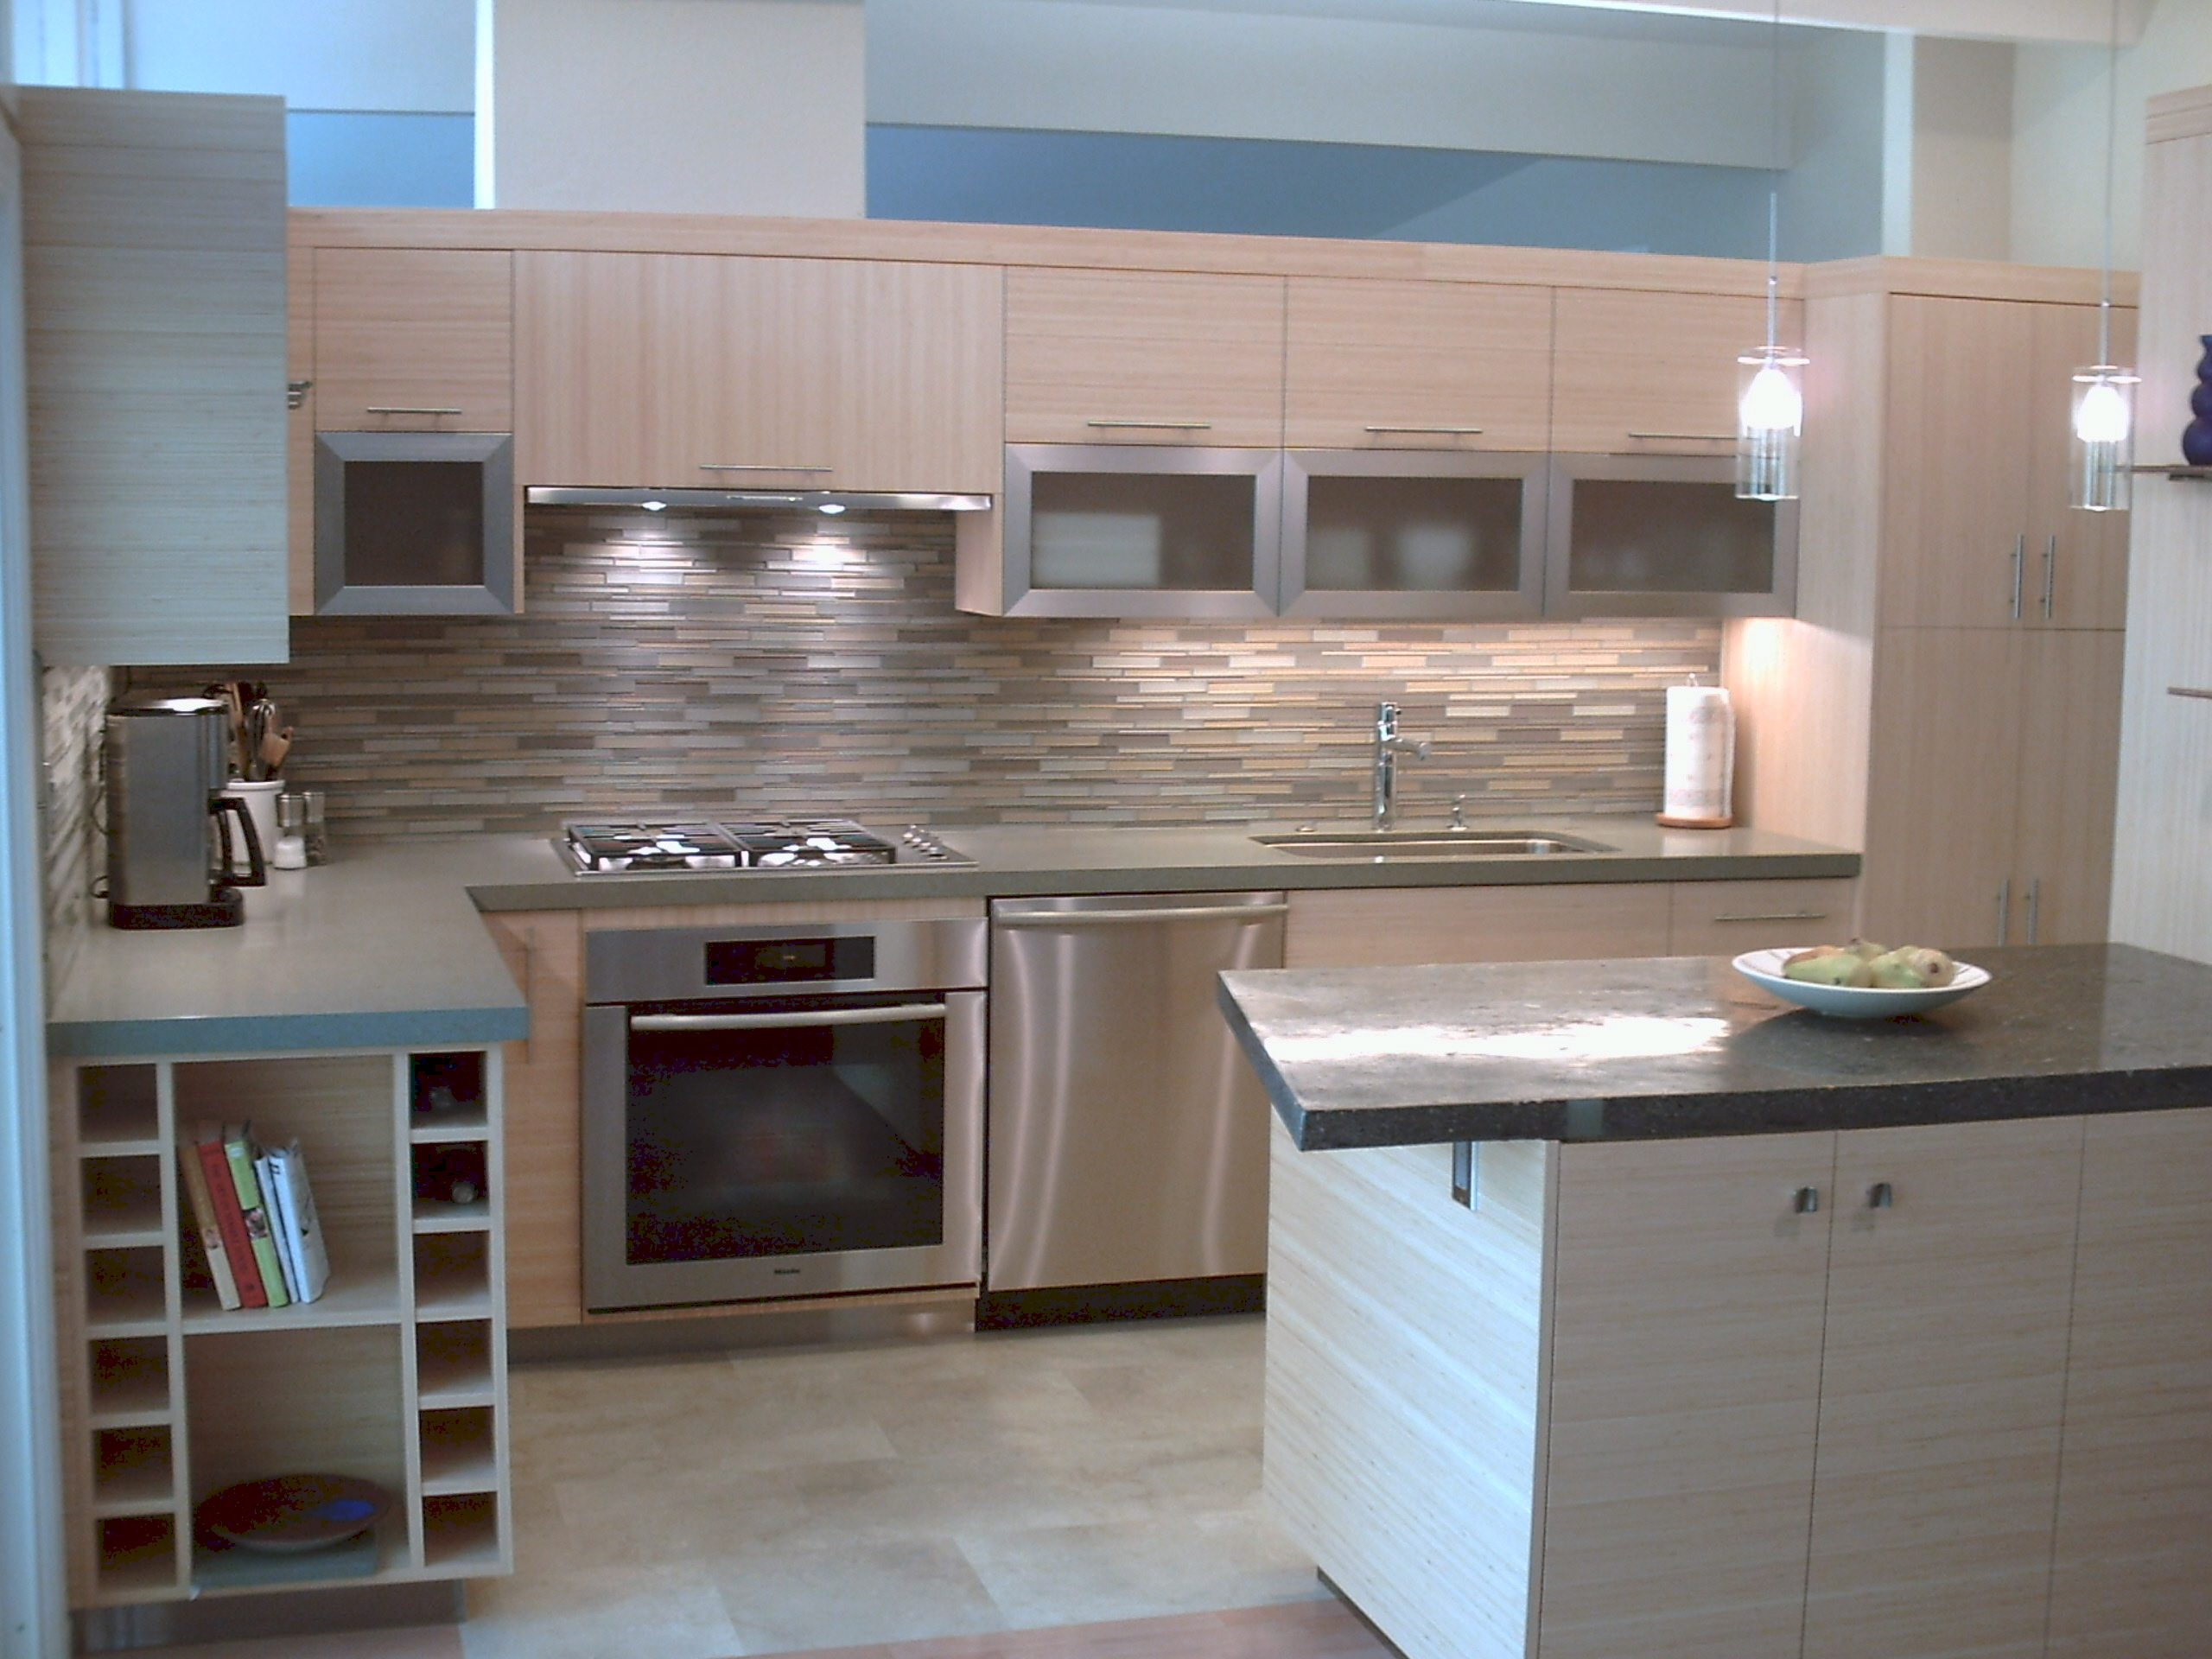 mid range kitchen cabinets small apartment bamboo remodel dining side imk